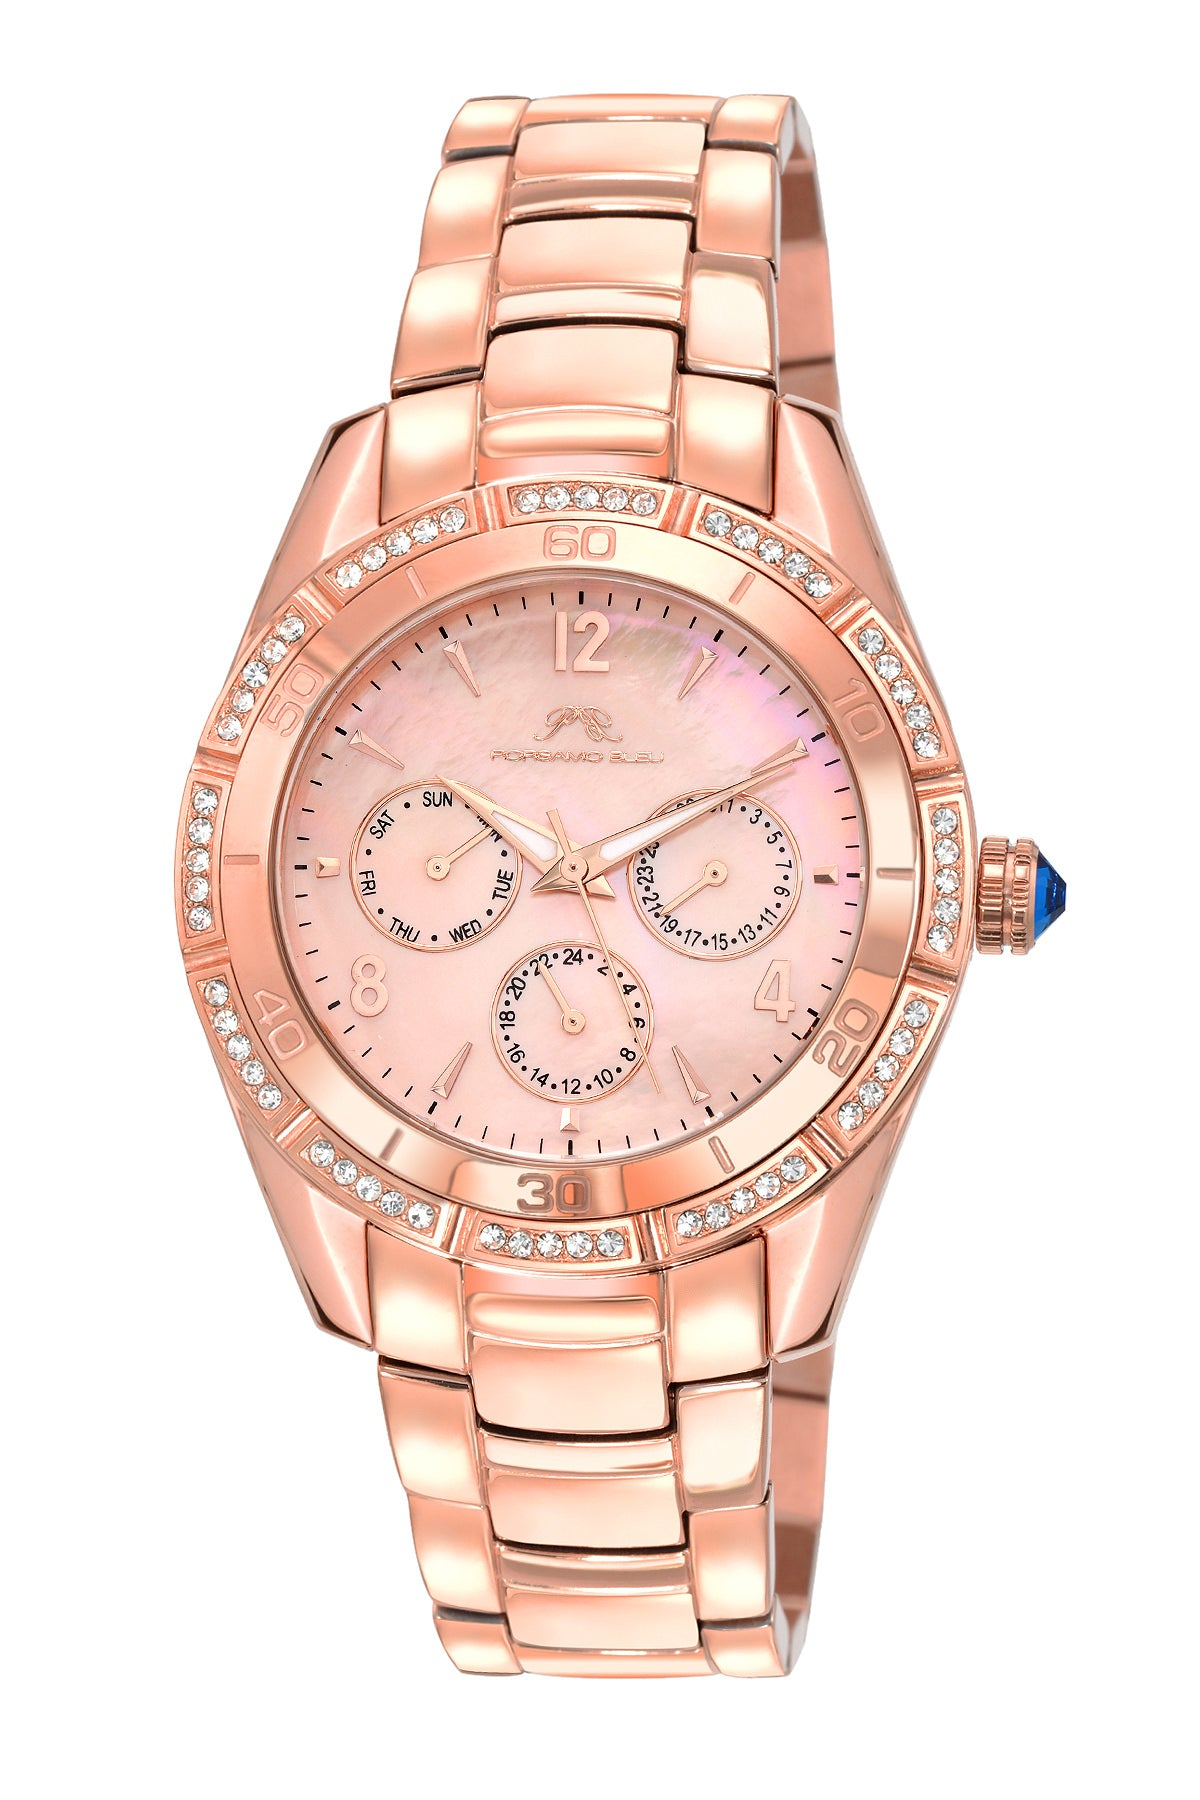 Porsamo Bleu Valentina luxury women's stainless steel watch, rose, white 541CVAS